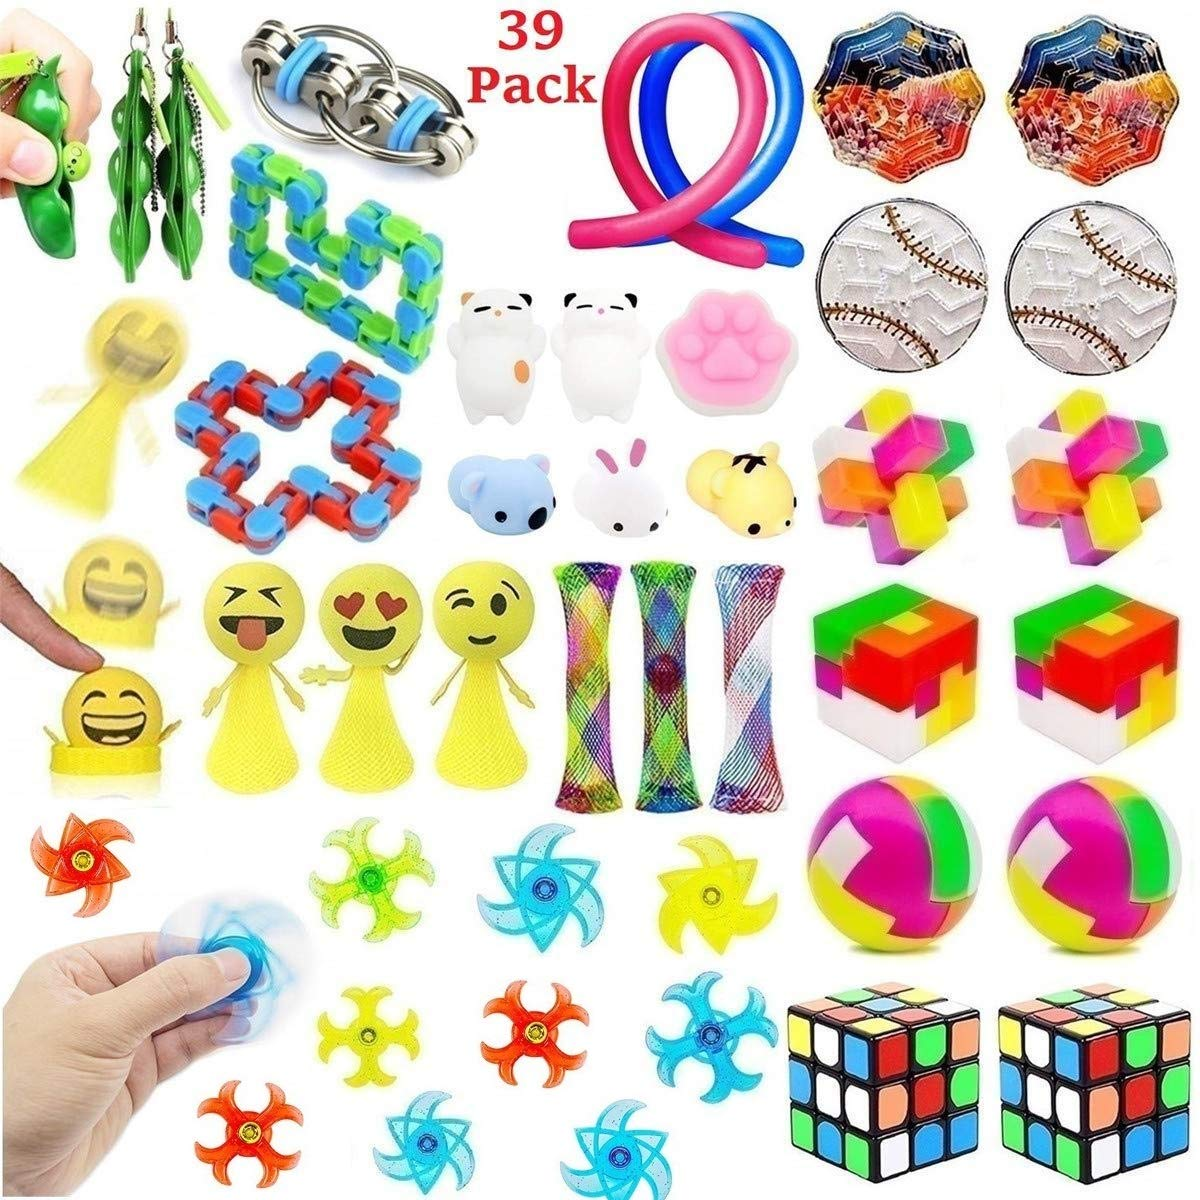 39 Pack Fidget Toys Bundle for Kids and Adults, Sensory Toys Set for Stress Relief and Anti-Anxiety, Sensory Fidget Hand Toys for ADD ADHD Autism, School Supplies for Autistic Children by SpringFly